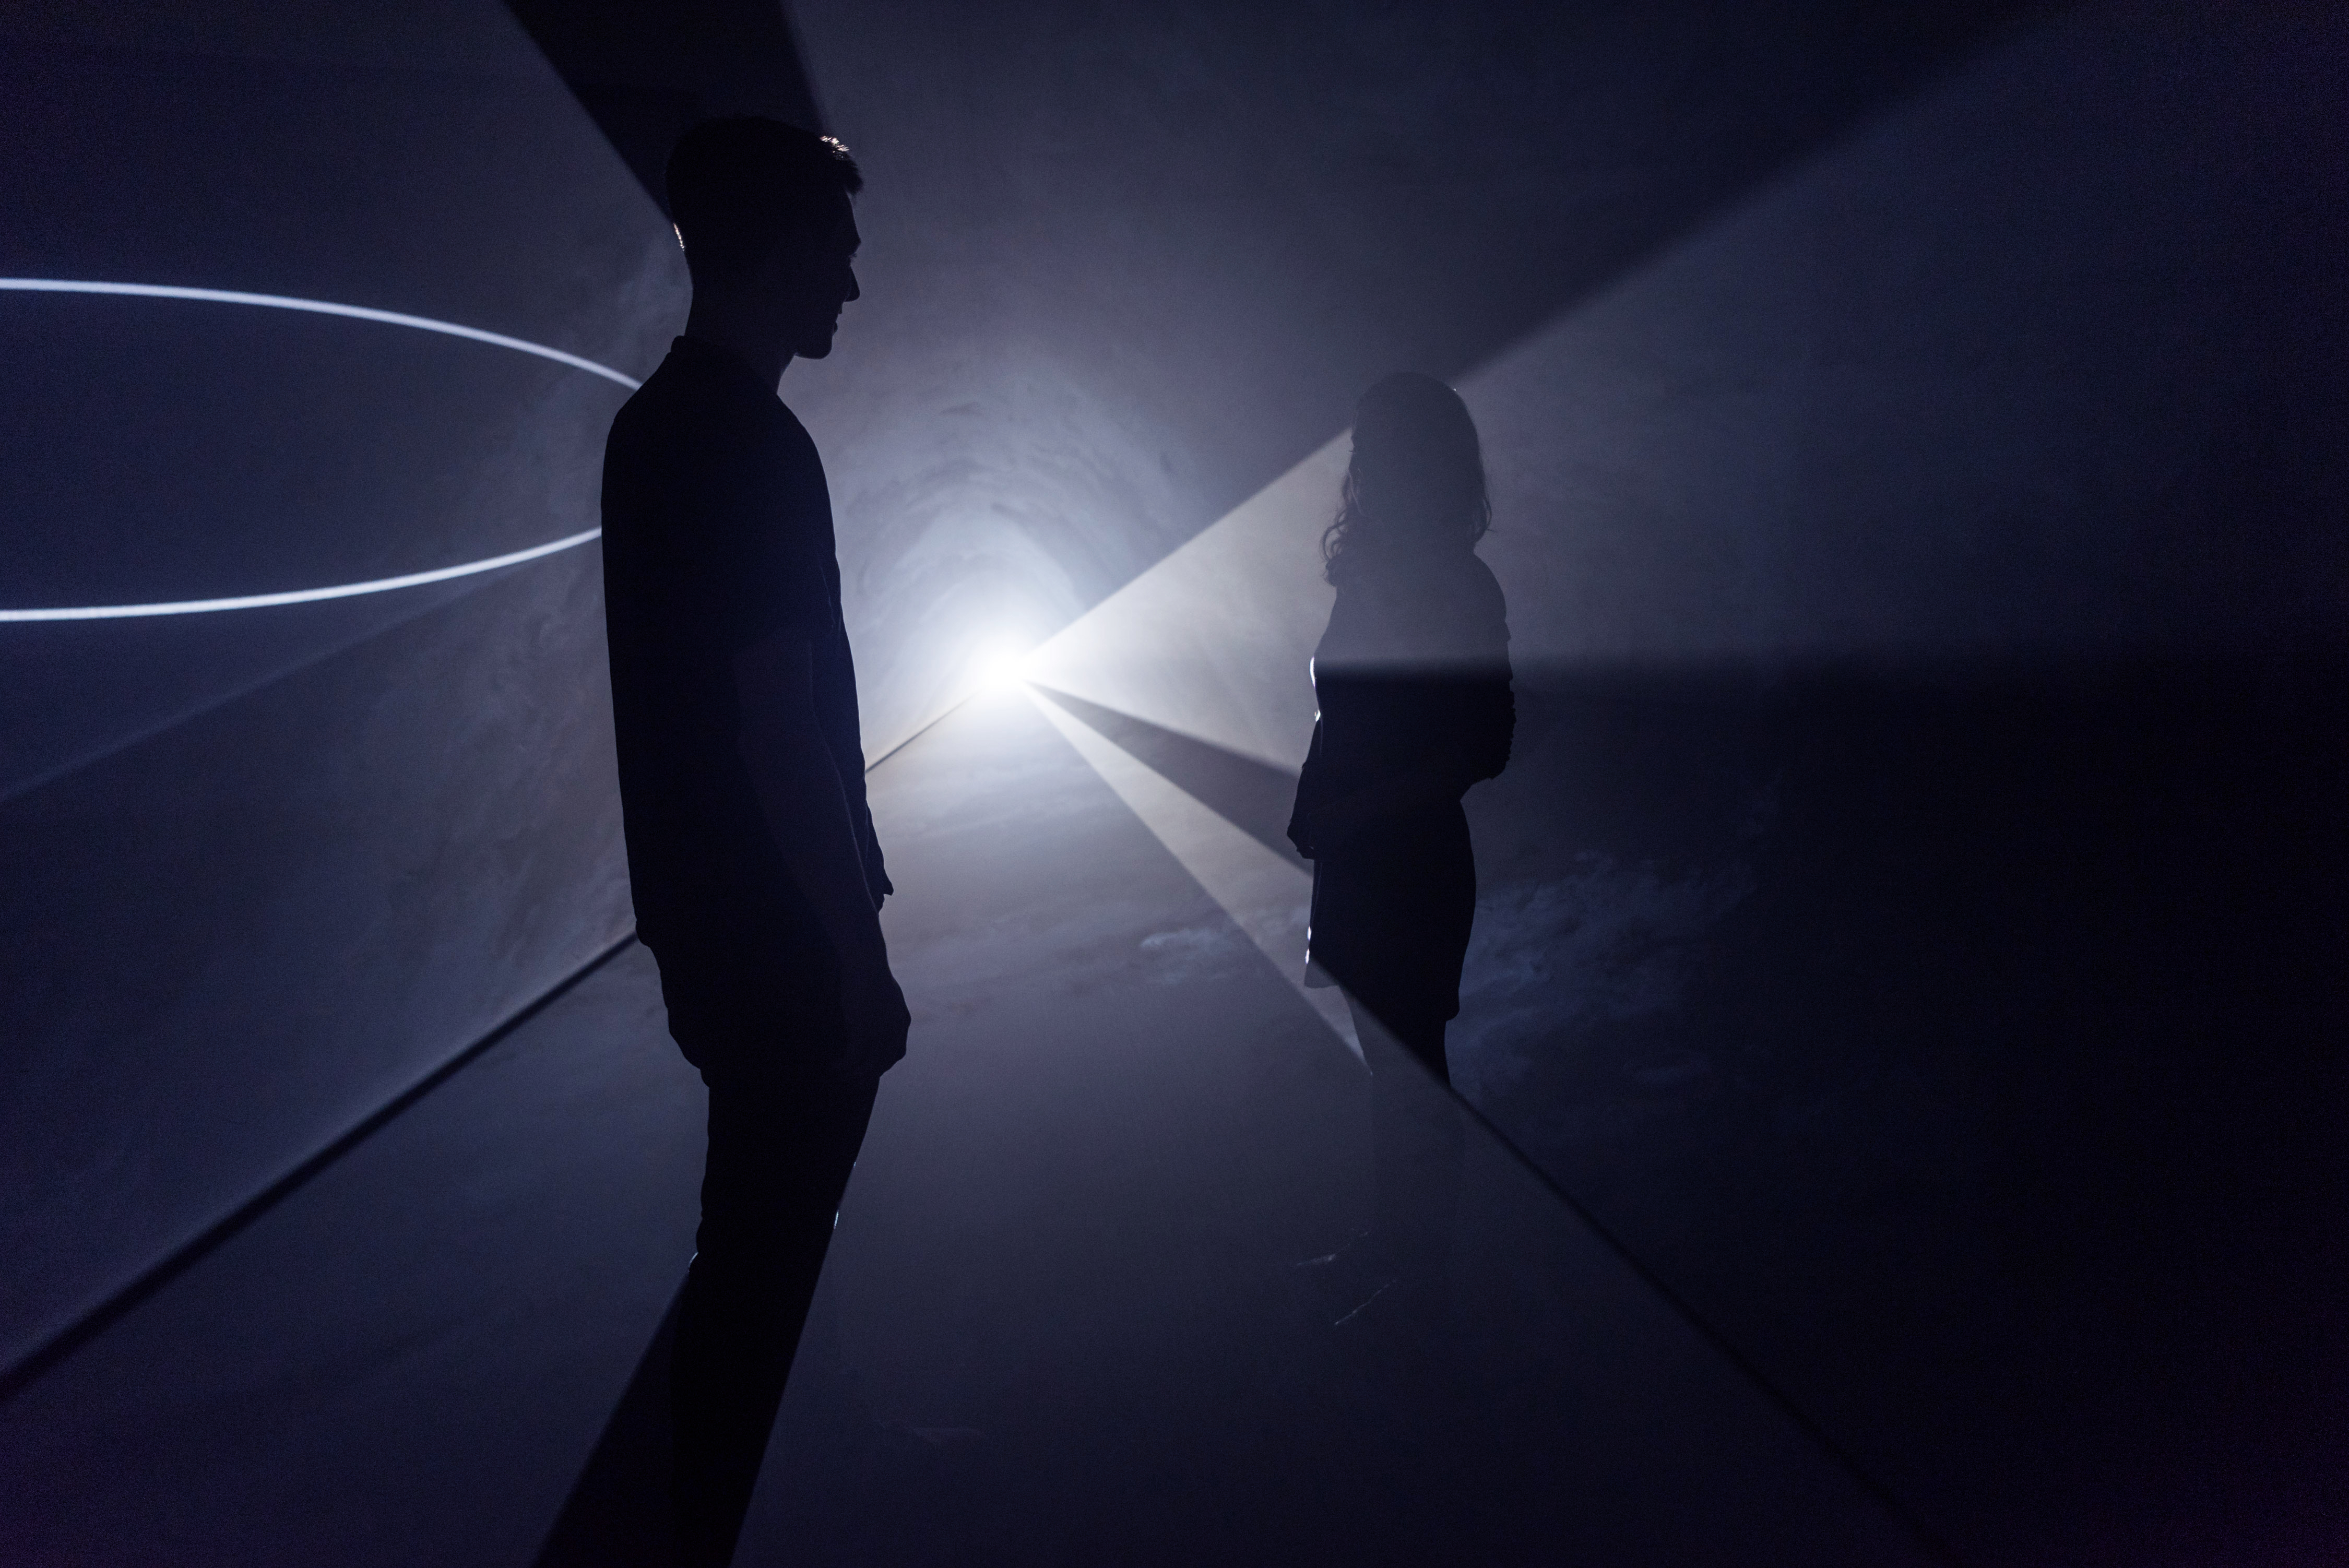 Anthony McCall / The light building a dialogue